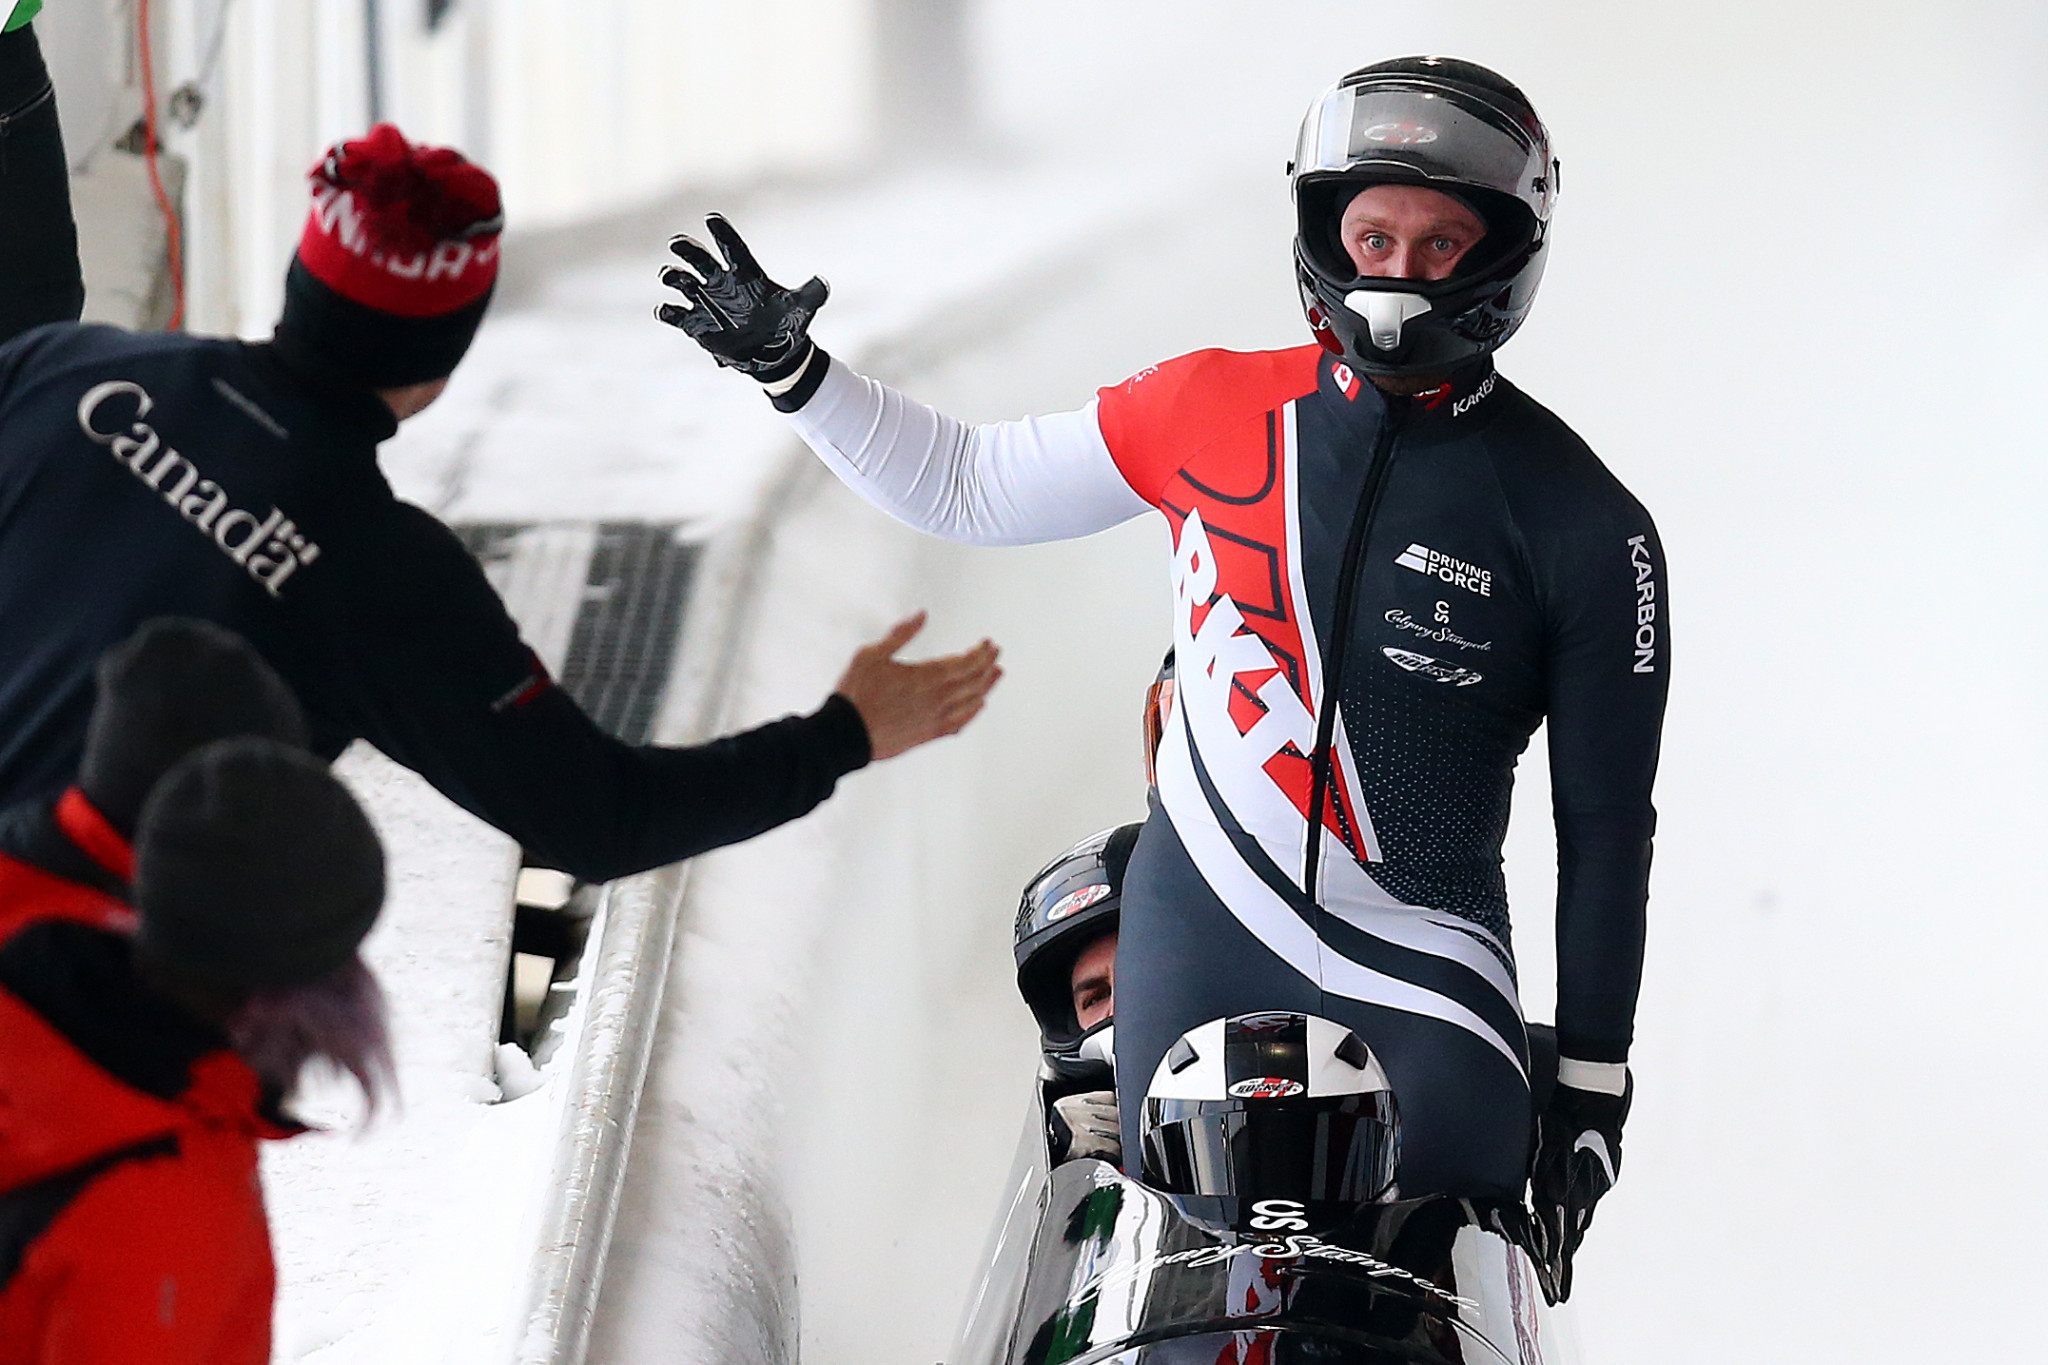 Bobsleigh Canada Skeleton will use recruitment drives to find the next generation of Olympic athletes ©Getty Images